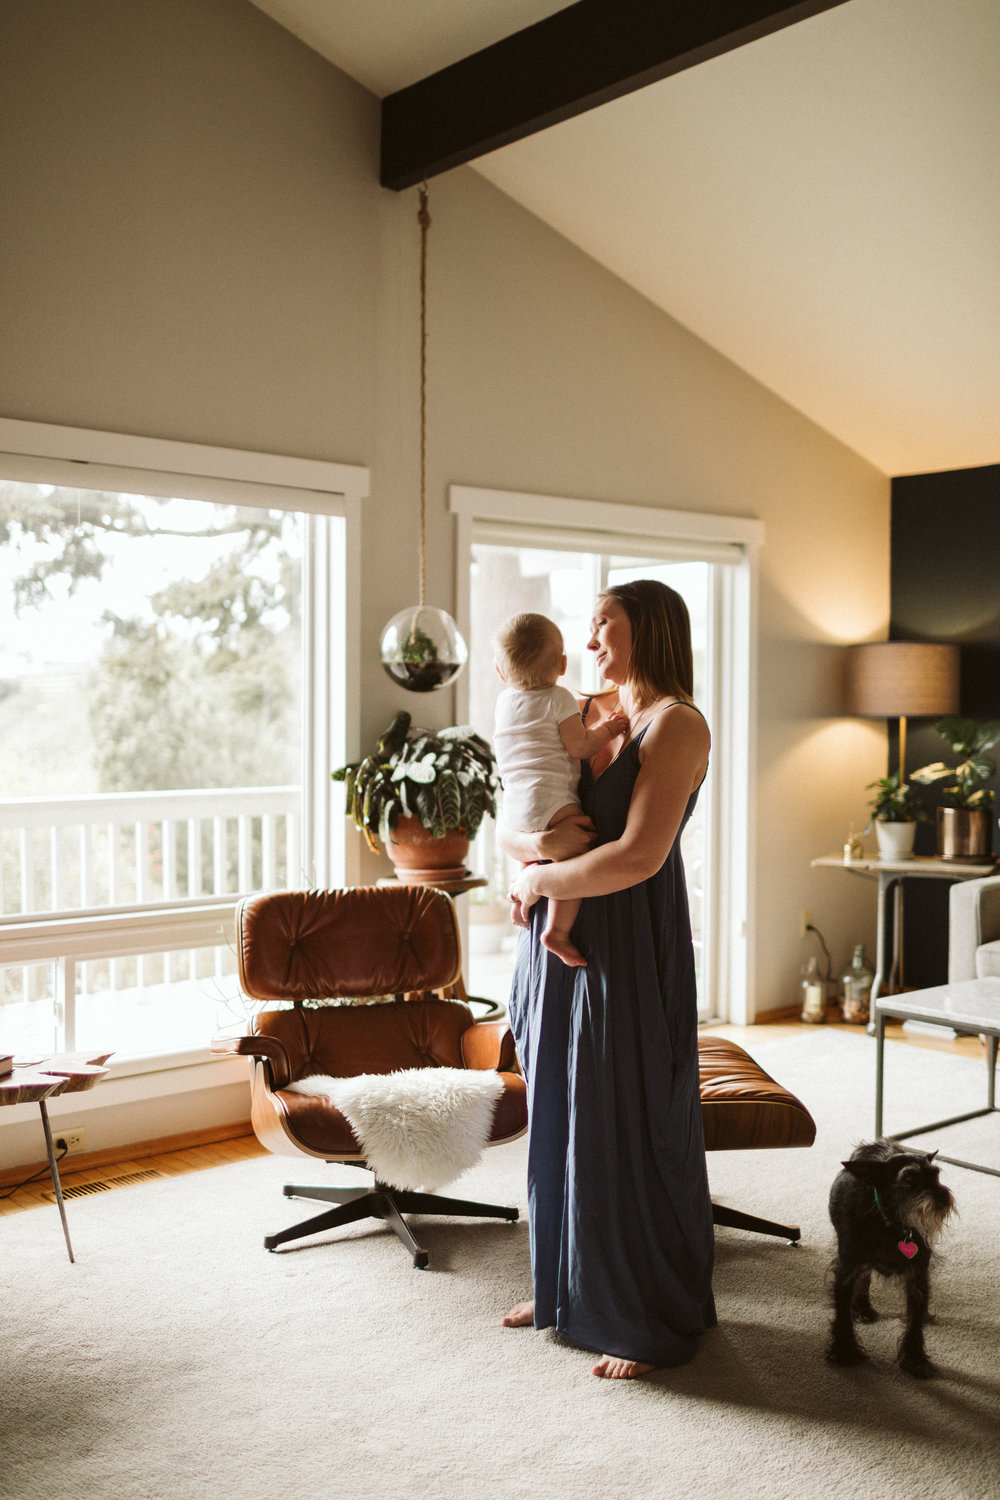 Seattle Family In Home Photography13.jpg